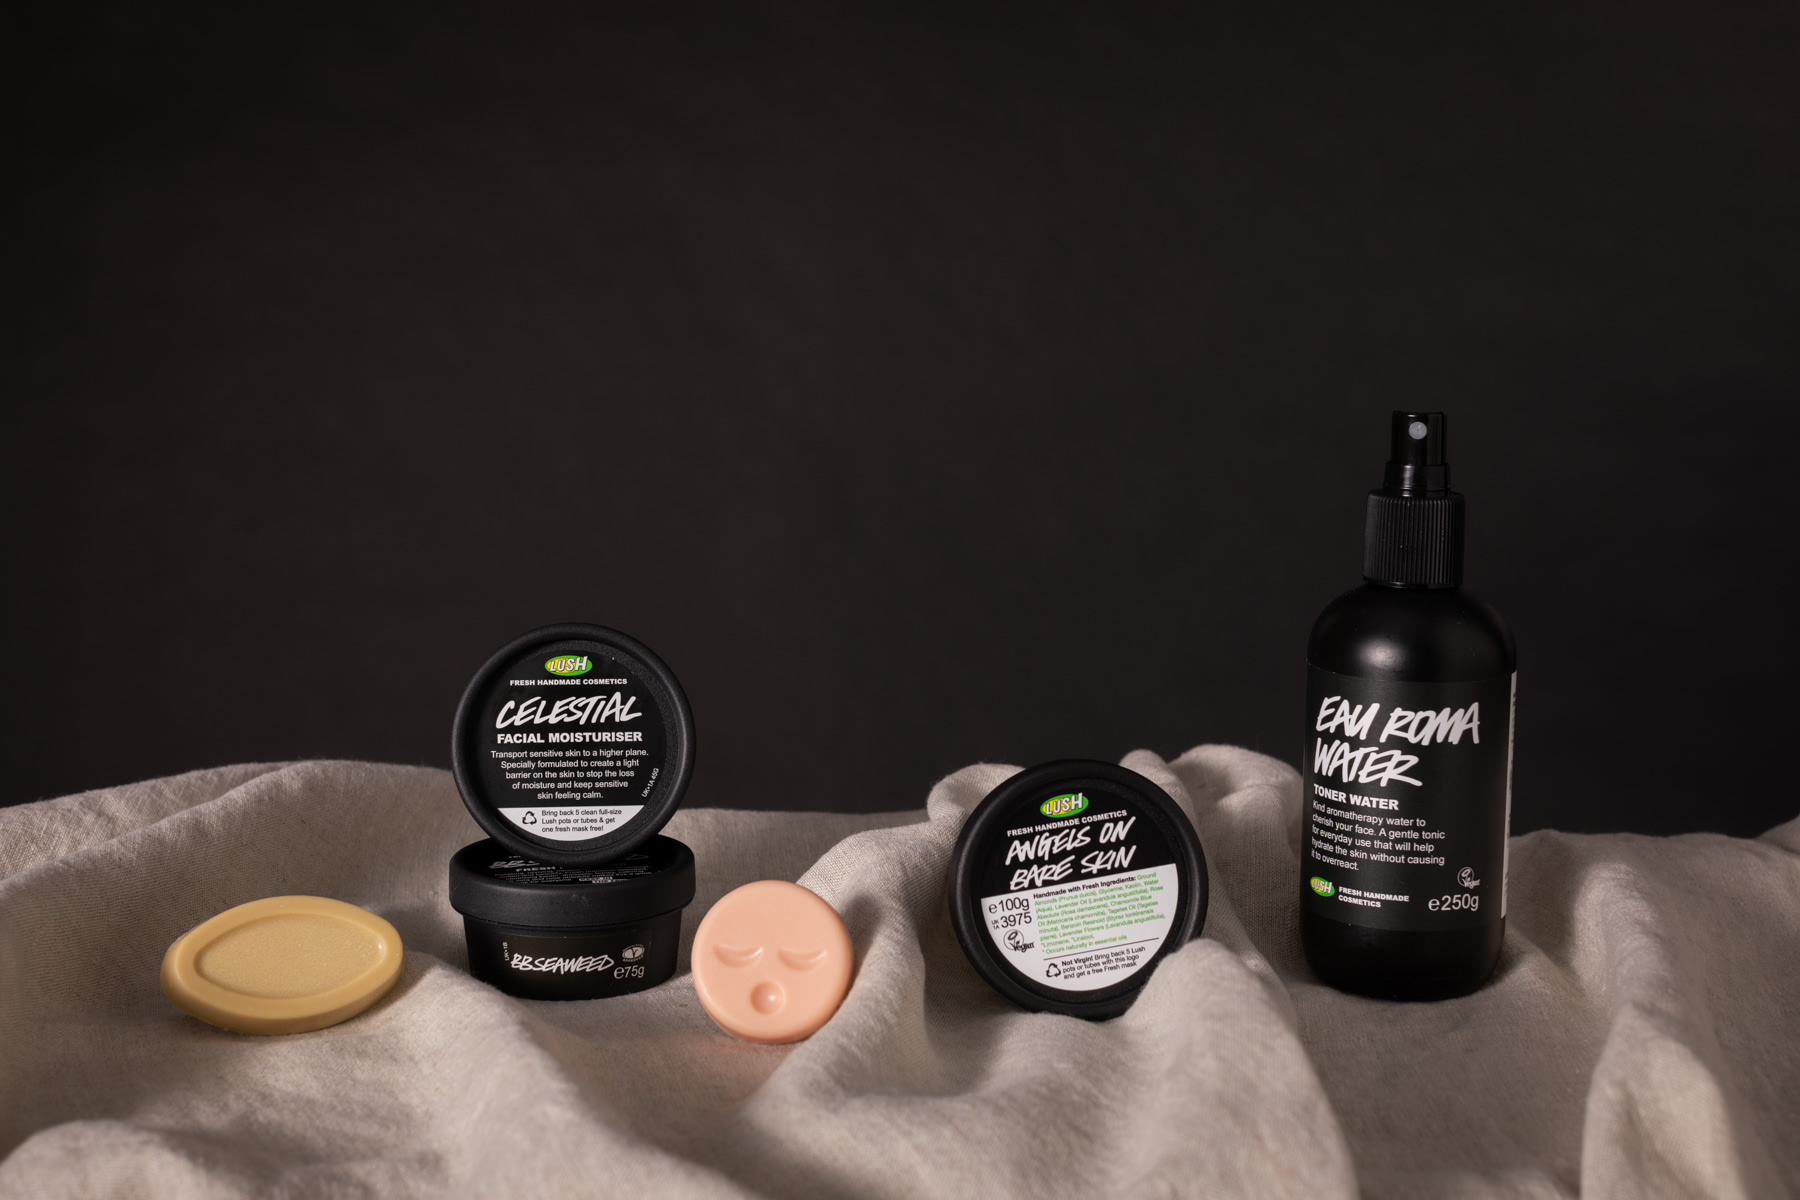 A selection of skincare products